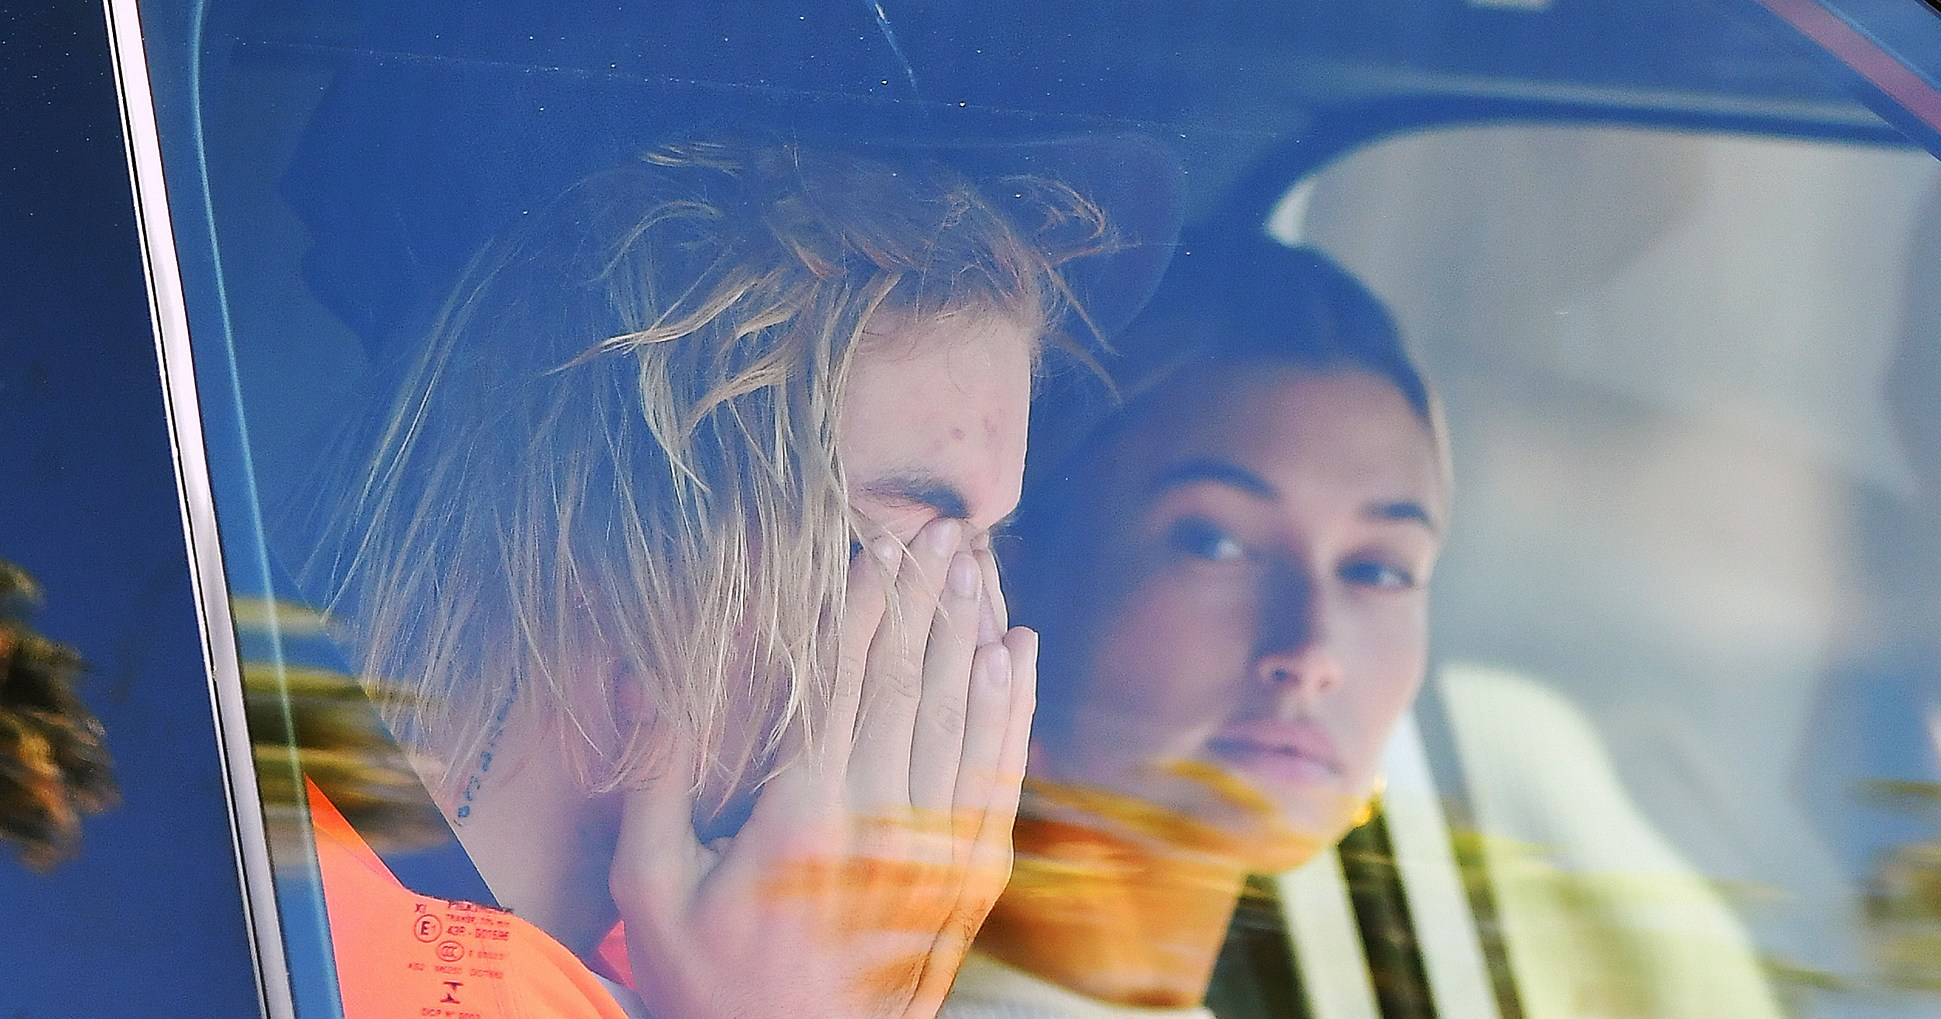 Justin Bieber Spotted Looking Emotional: He 'Doesn't Feel Whole'